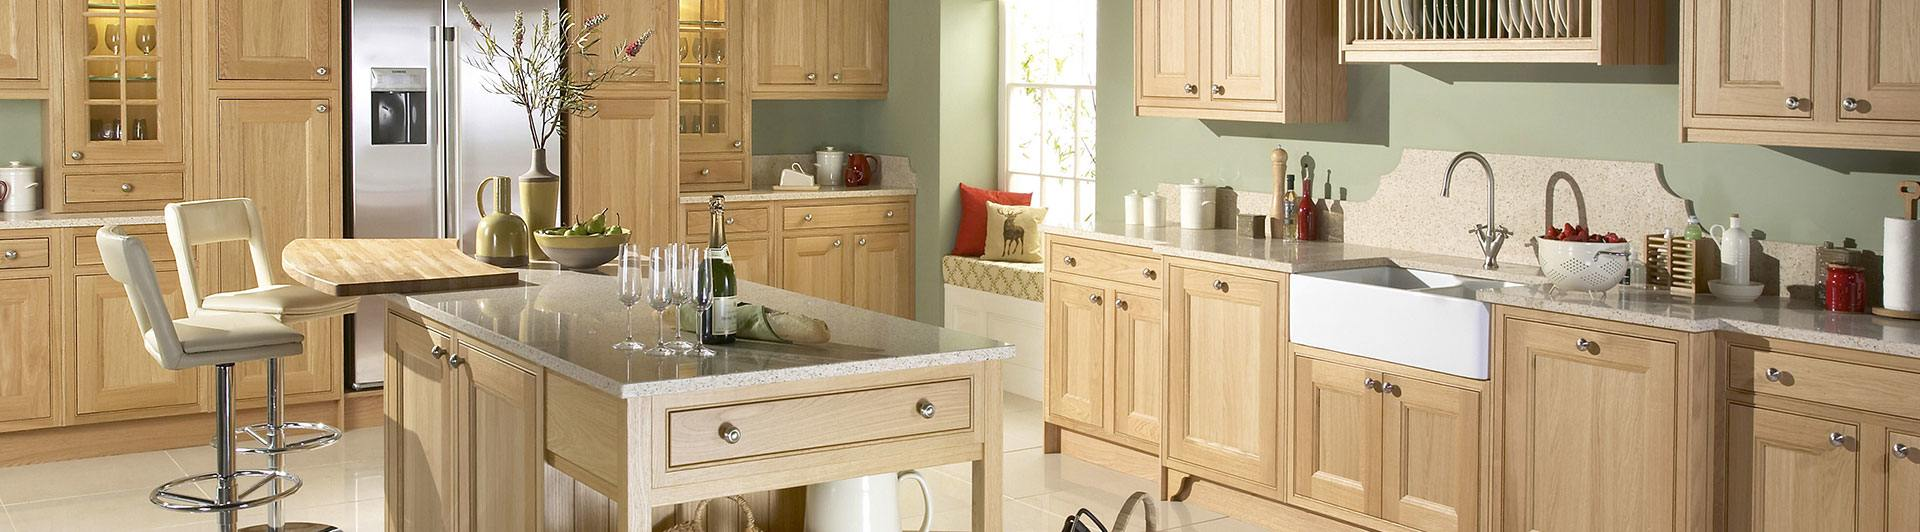 Tetbury Kitchens header